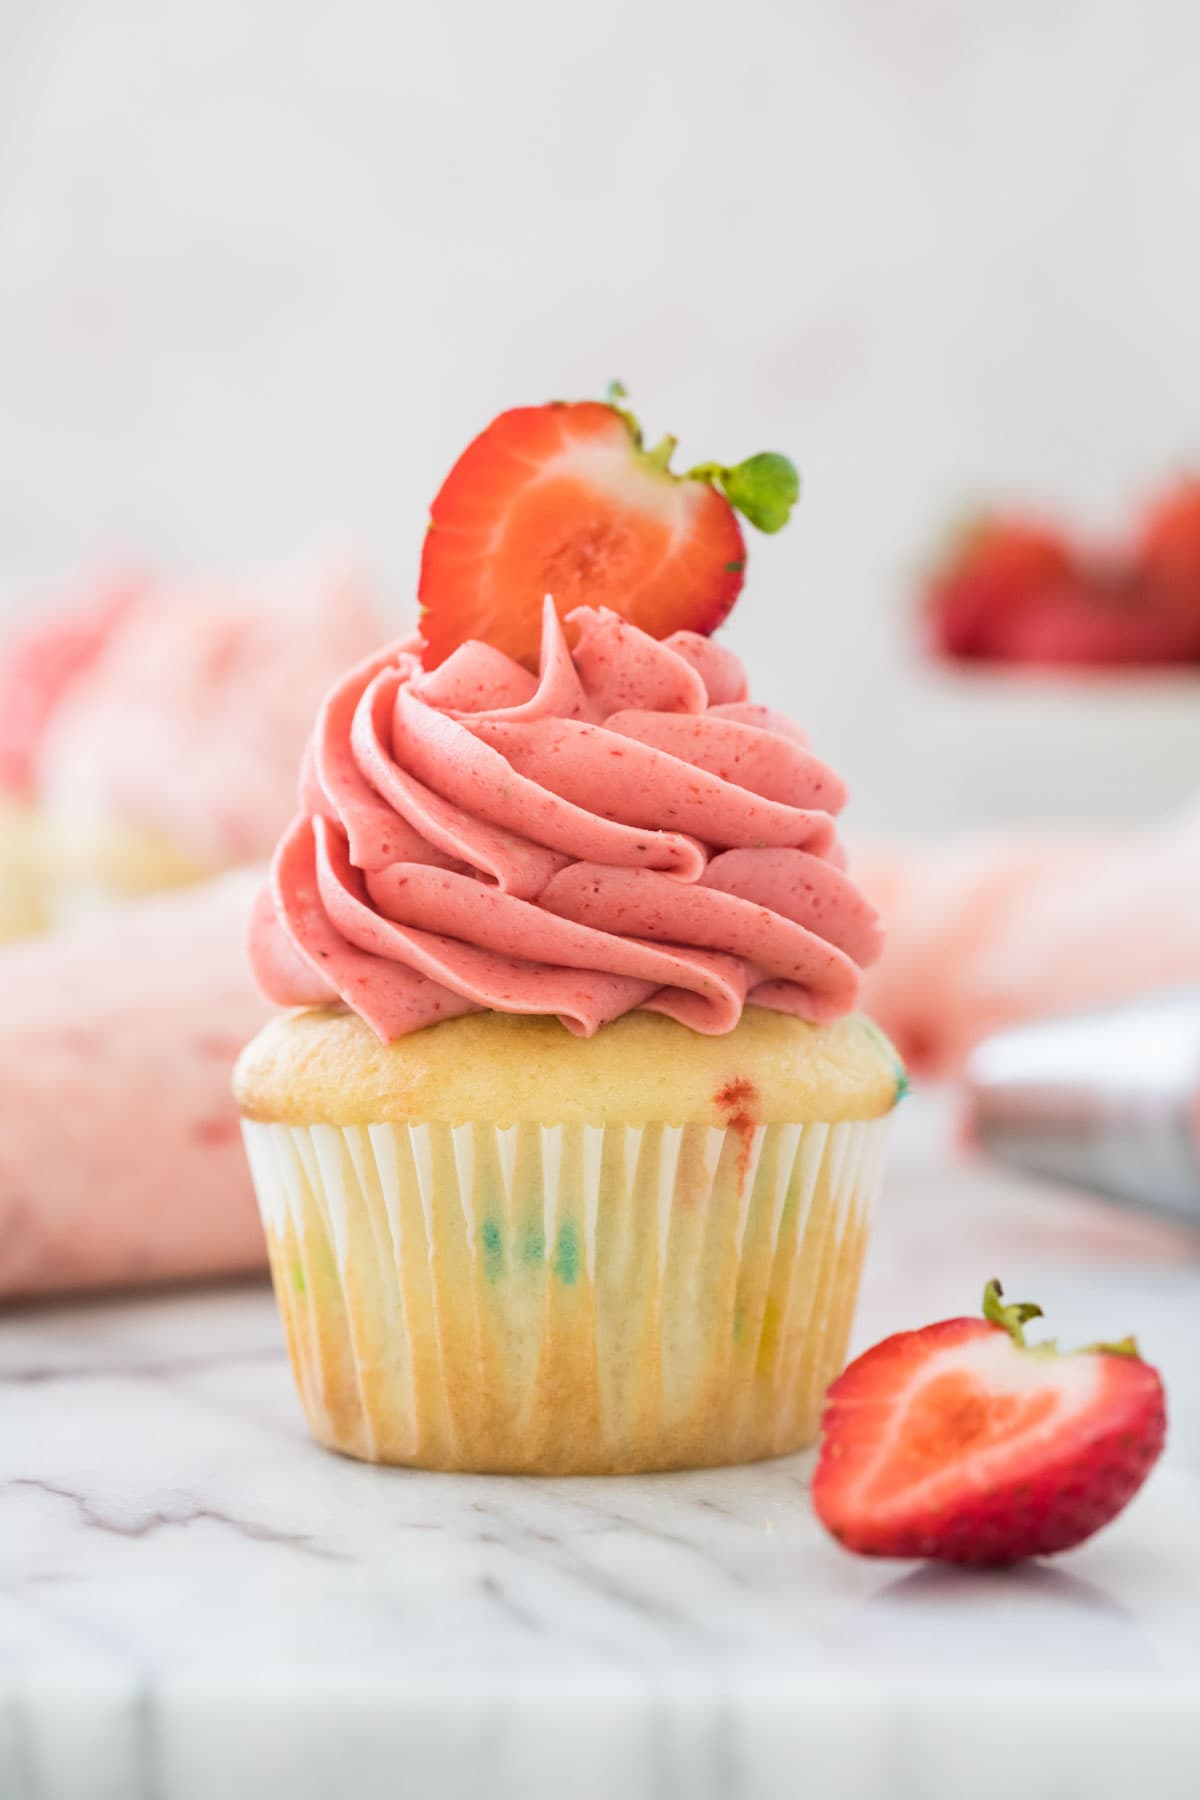 Vanilla cupcake topped with bright pink strawberry frosting and a halved fresh strawberry